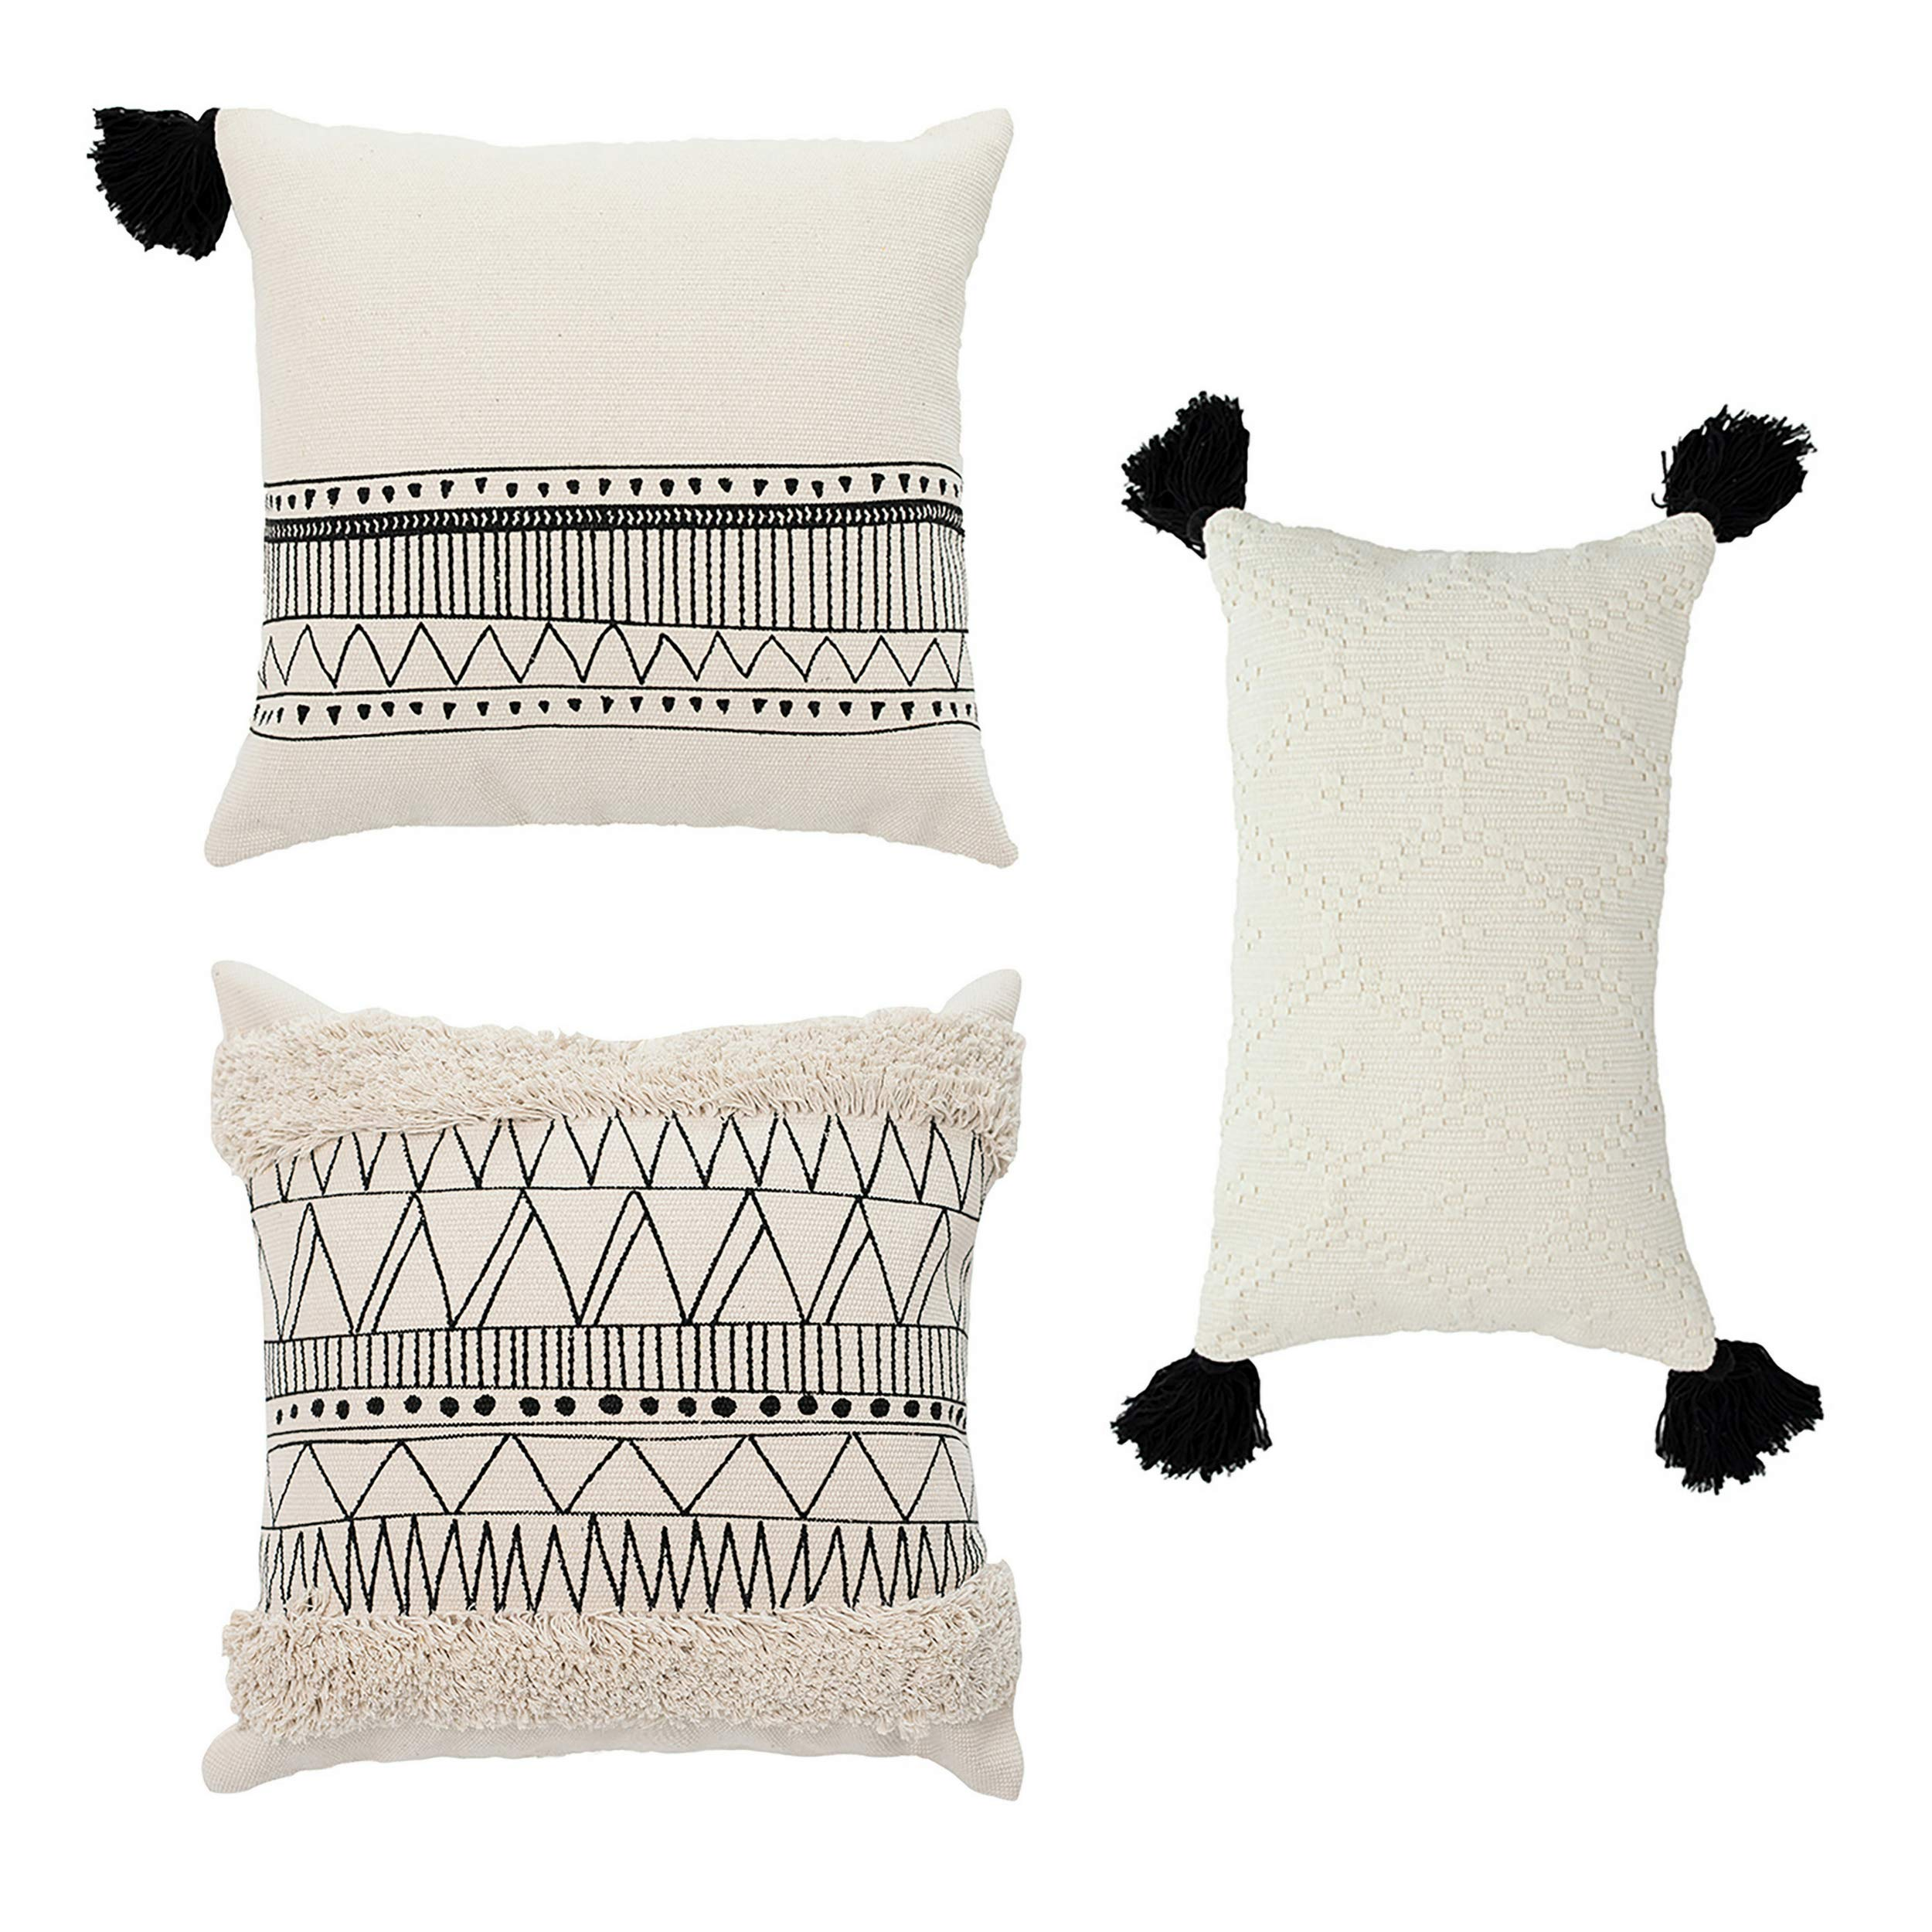 Cozi Abode Geometric Decorative Throw Pillow Covers Set of 3 18 X 18'' 12 X 20'' for Bed/Sofa Woven Tassels Tufted Modern Design Black and Cream